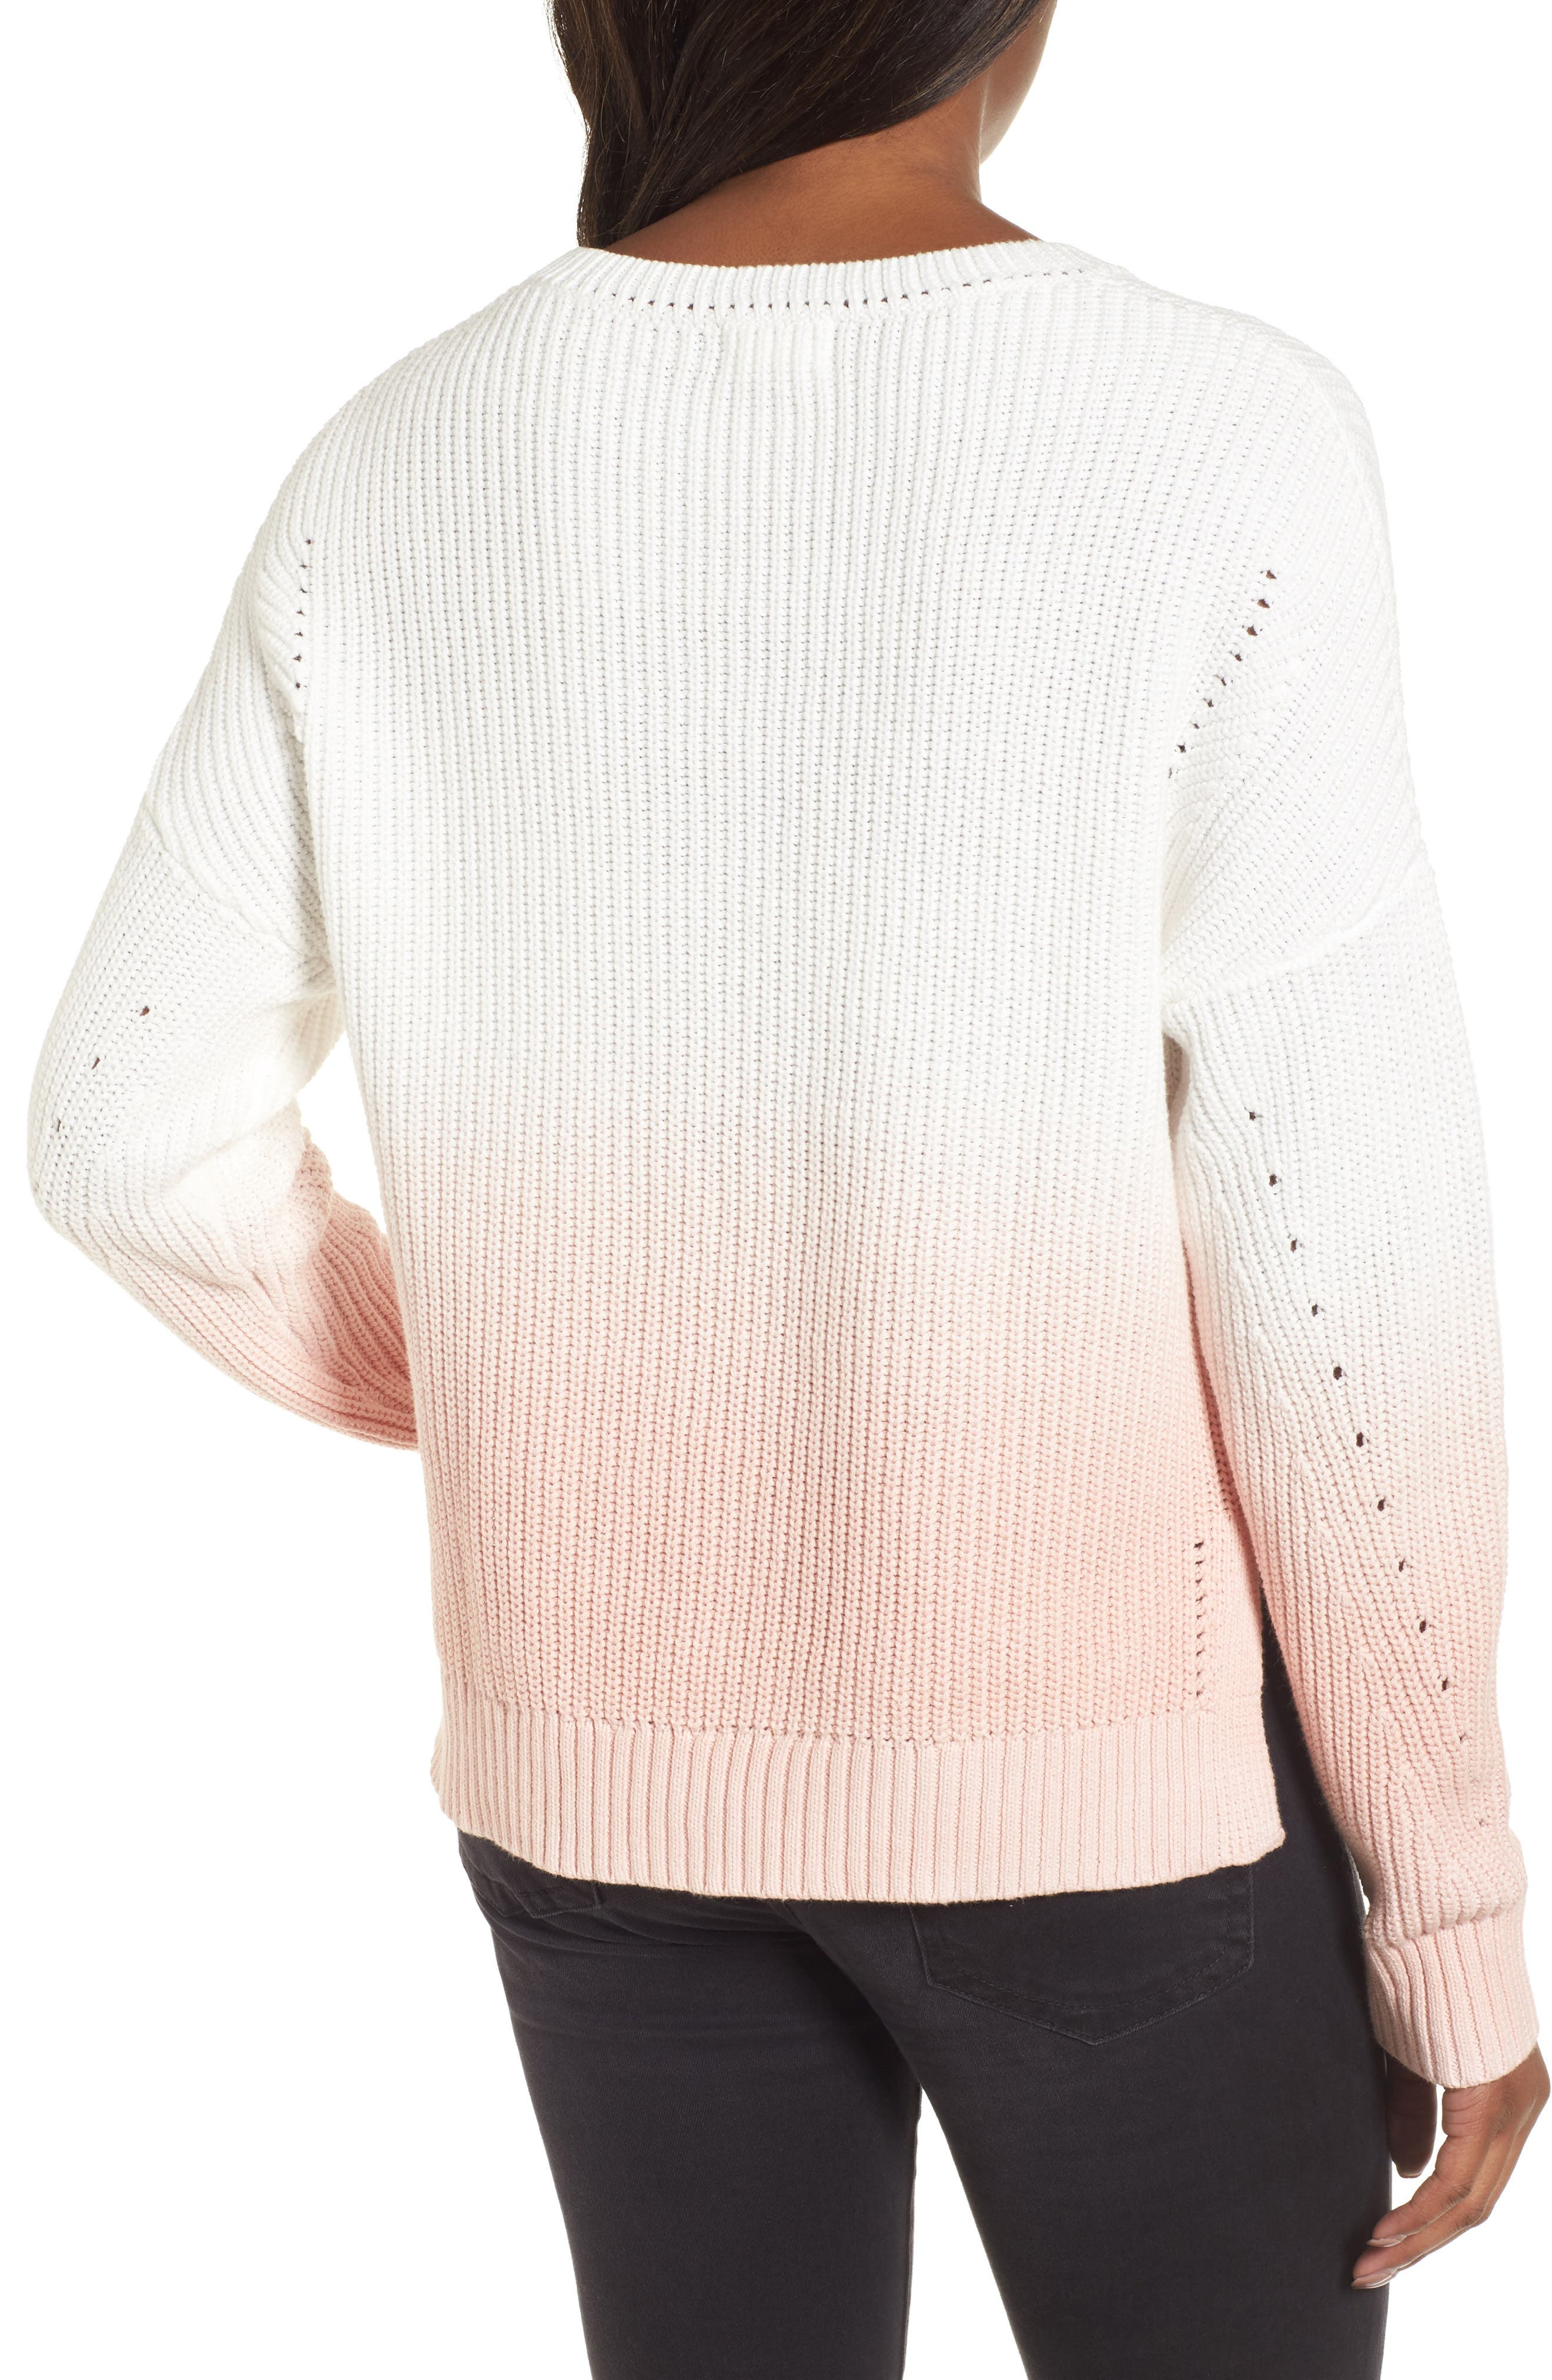 Shaker Stitch Cotton Sweater,                             Alternate thumbnail 4, color,